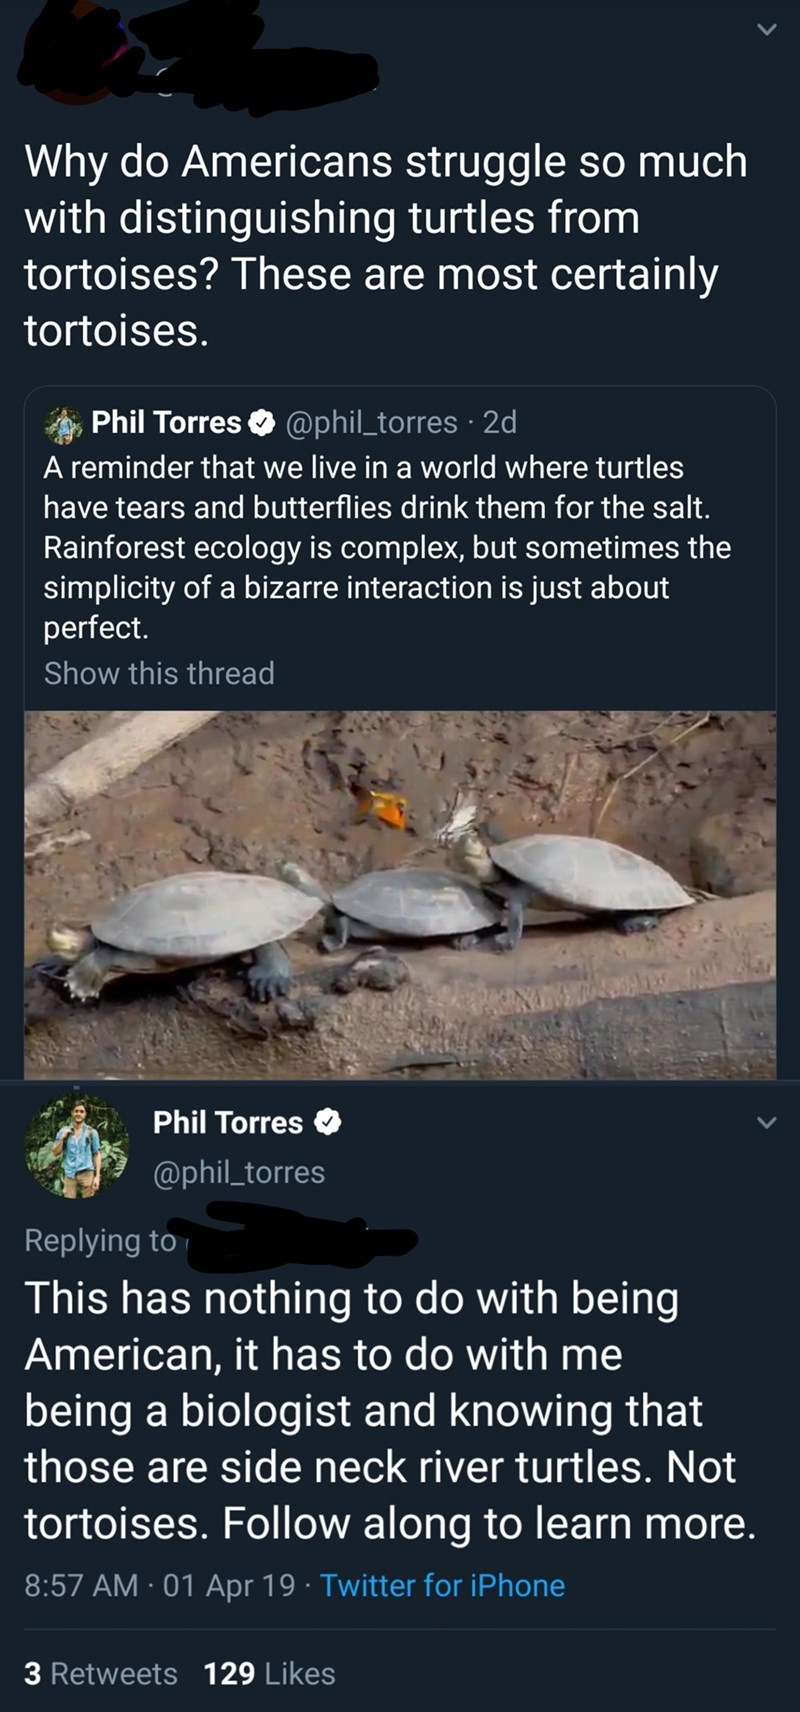 Organism - Why do Americans struggle so much with distinguishing turtles from tortoises? These are most certainly tortoises. Phil Torres @phil_torres 2d A reminder that we live in a world where turtles have tears and butterflies drink them for the salt. Rainforest ecology is complex, but sometimes the simplicity of a bizarre interaction is just about perfect. Show this thread Phil Torres @phil_torres Replying to This has nothing to do with being American, it has to do with me being a biologist a